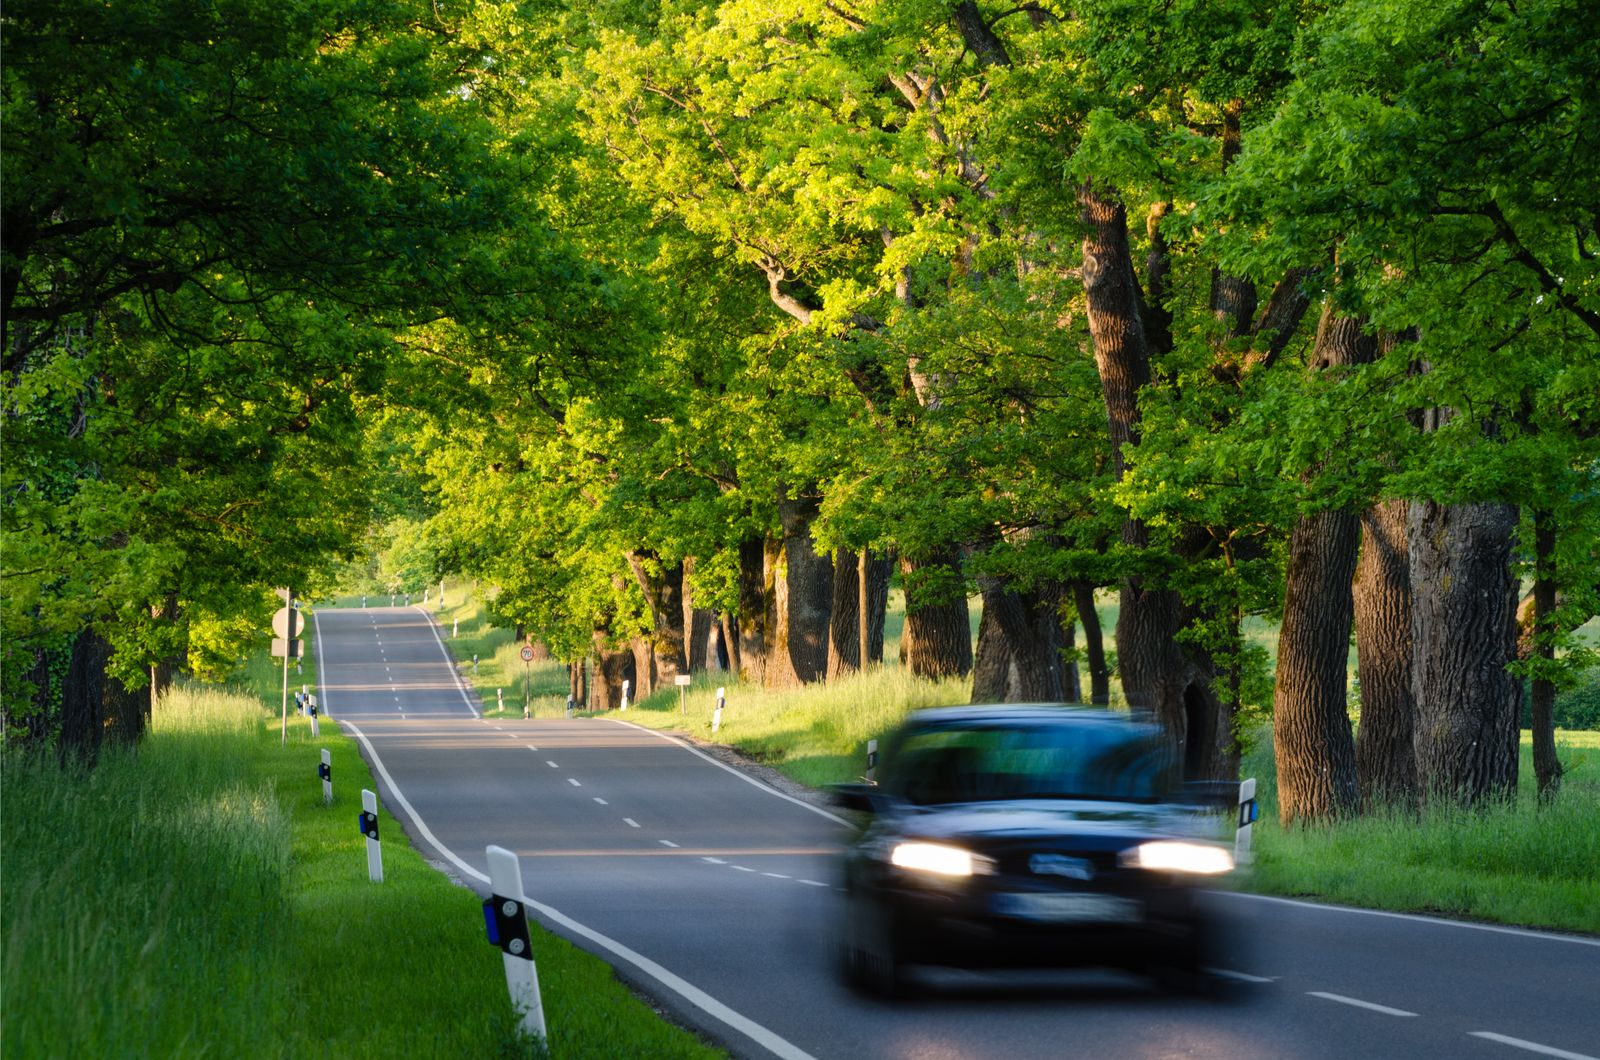 Black car on Country Road with Oak Trees